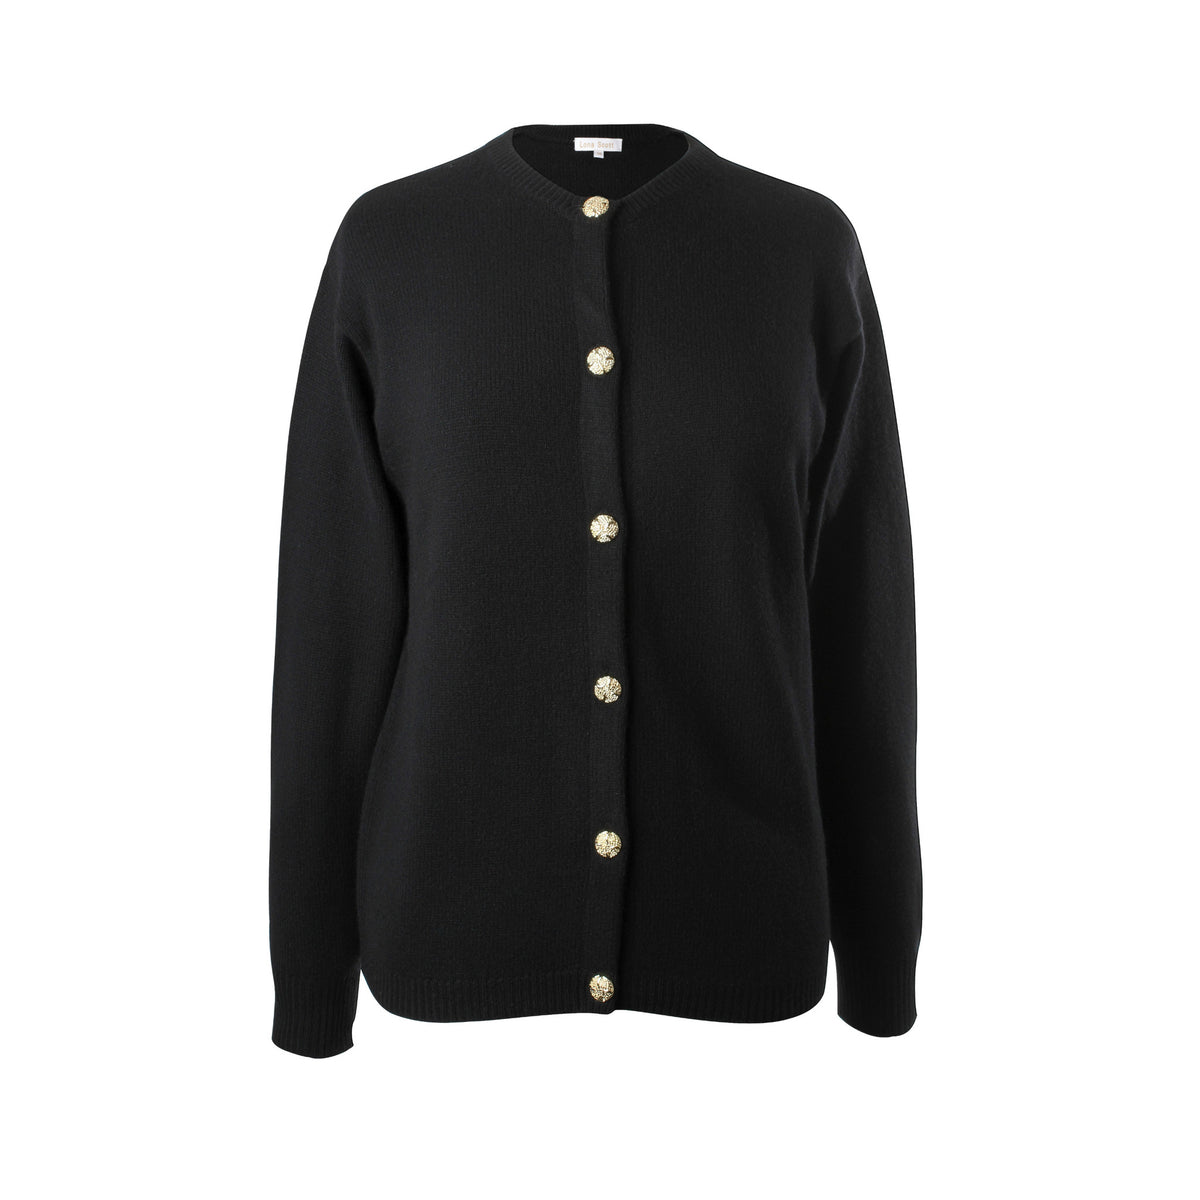 Ladies 3-Ply Cashmere Cardigan | Black | Shop at The Cashmere Choice | London